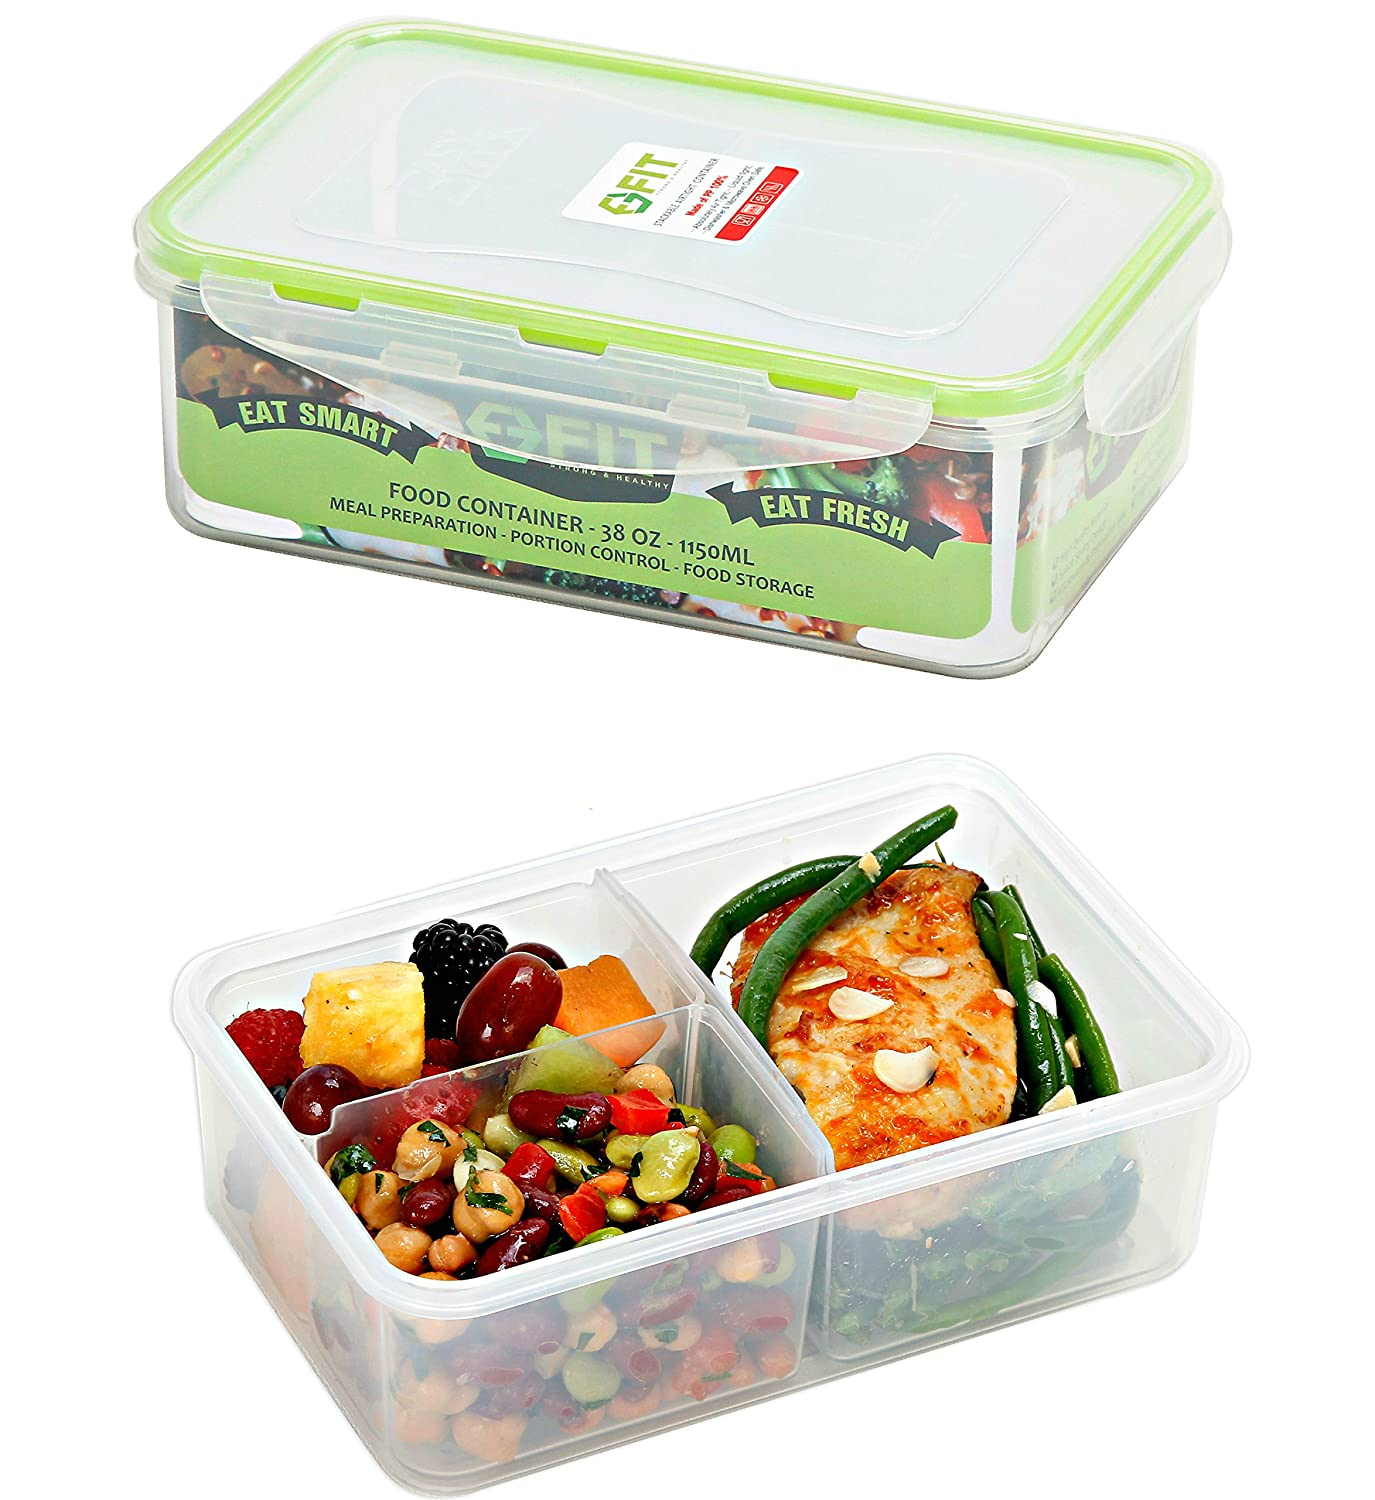 [2 Pack] Bento Lunch Box Meal Prep Containers (38 oz) - Food Storage Containers With Lids, Portion Control Containers, Divided Lunch Containers, Lunch Boxes for Adults and Kids, Leakproof